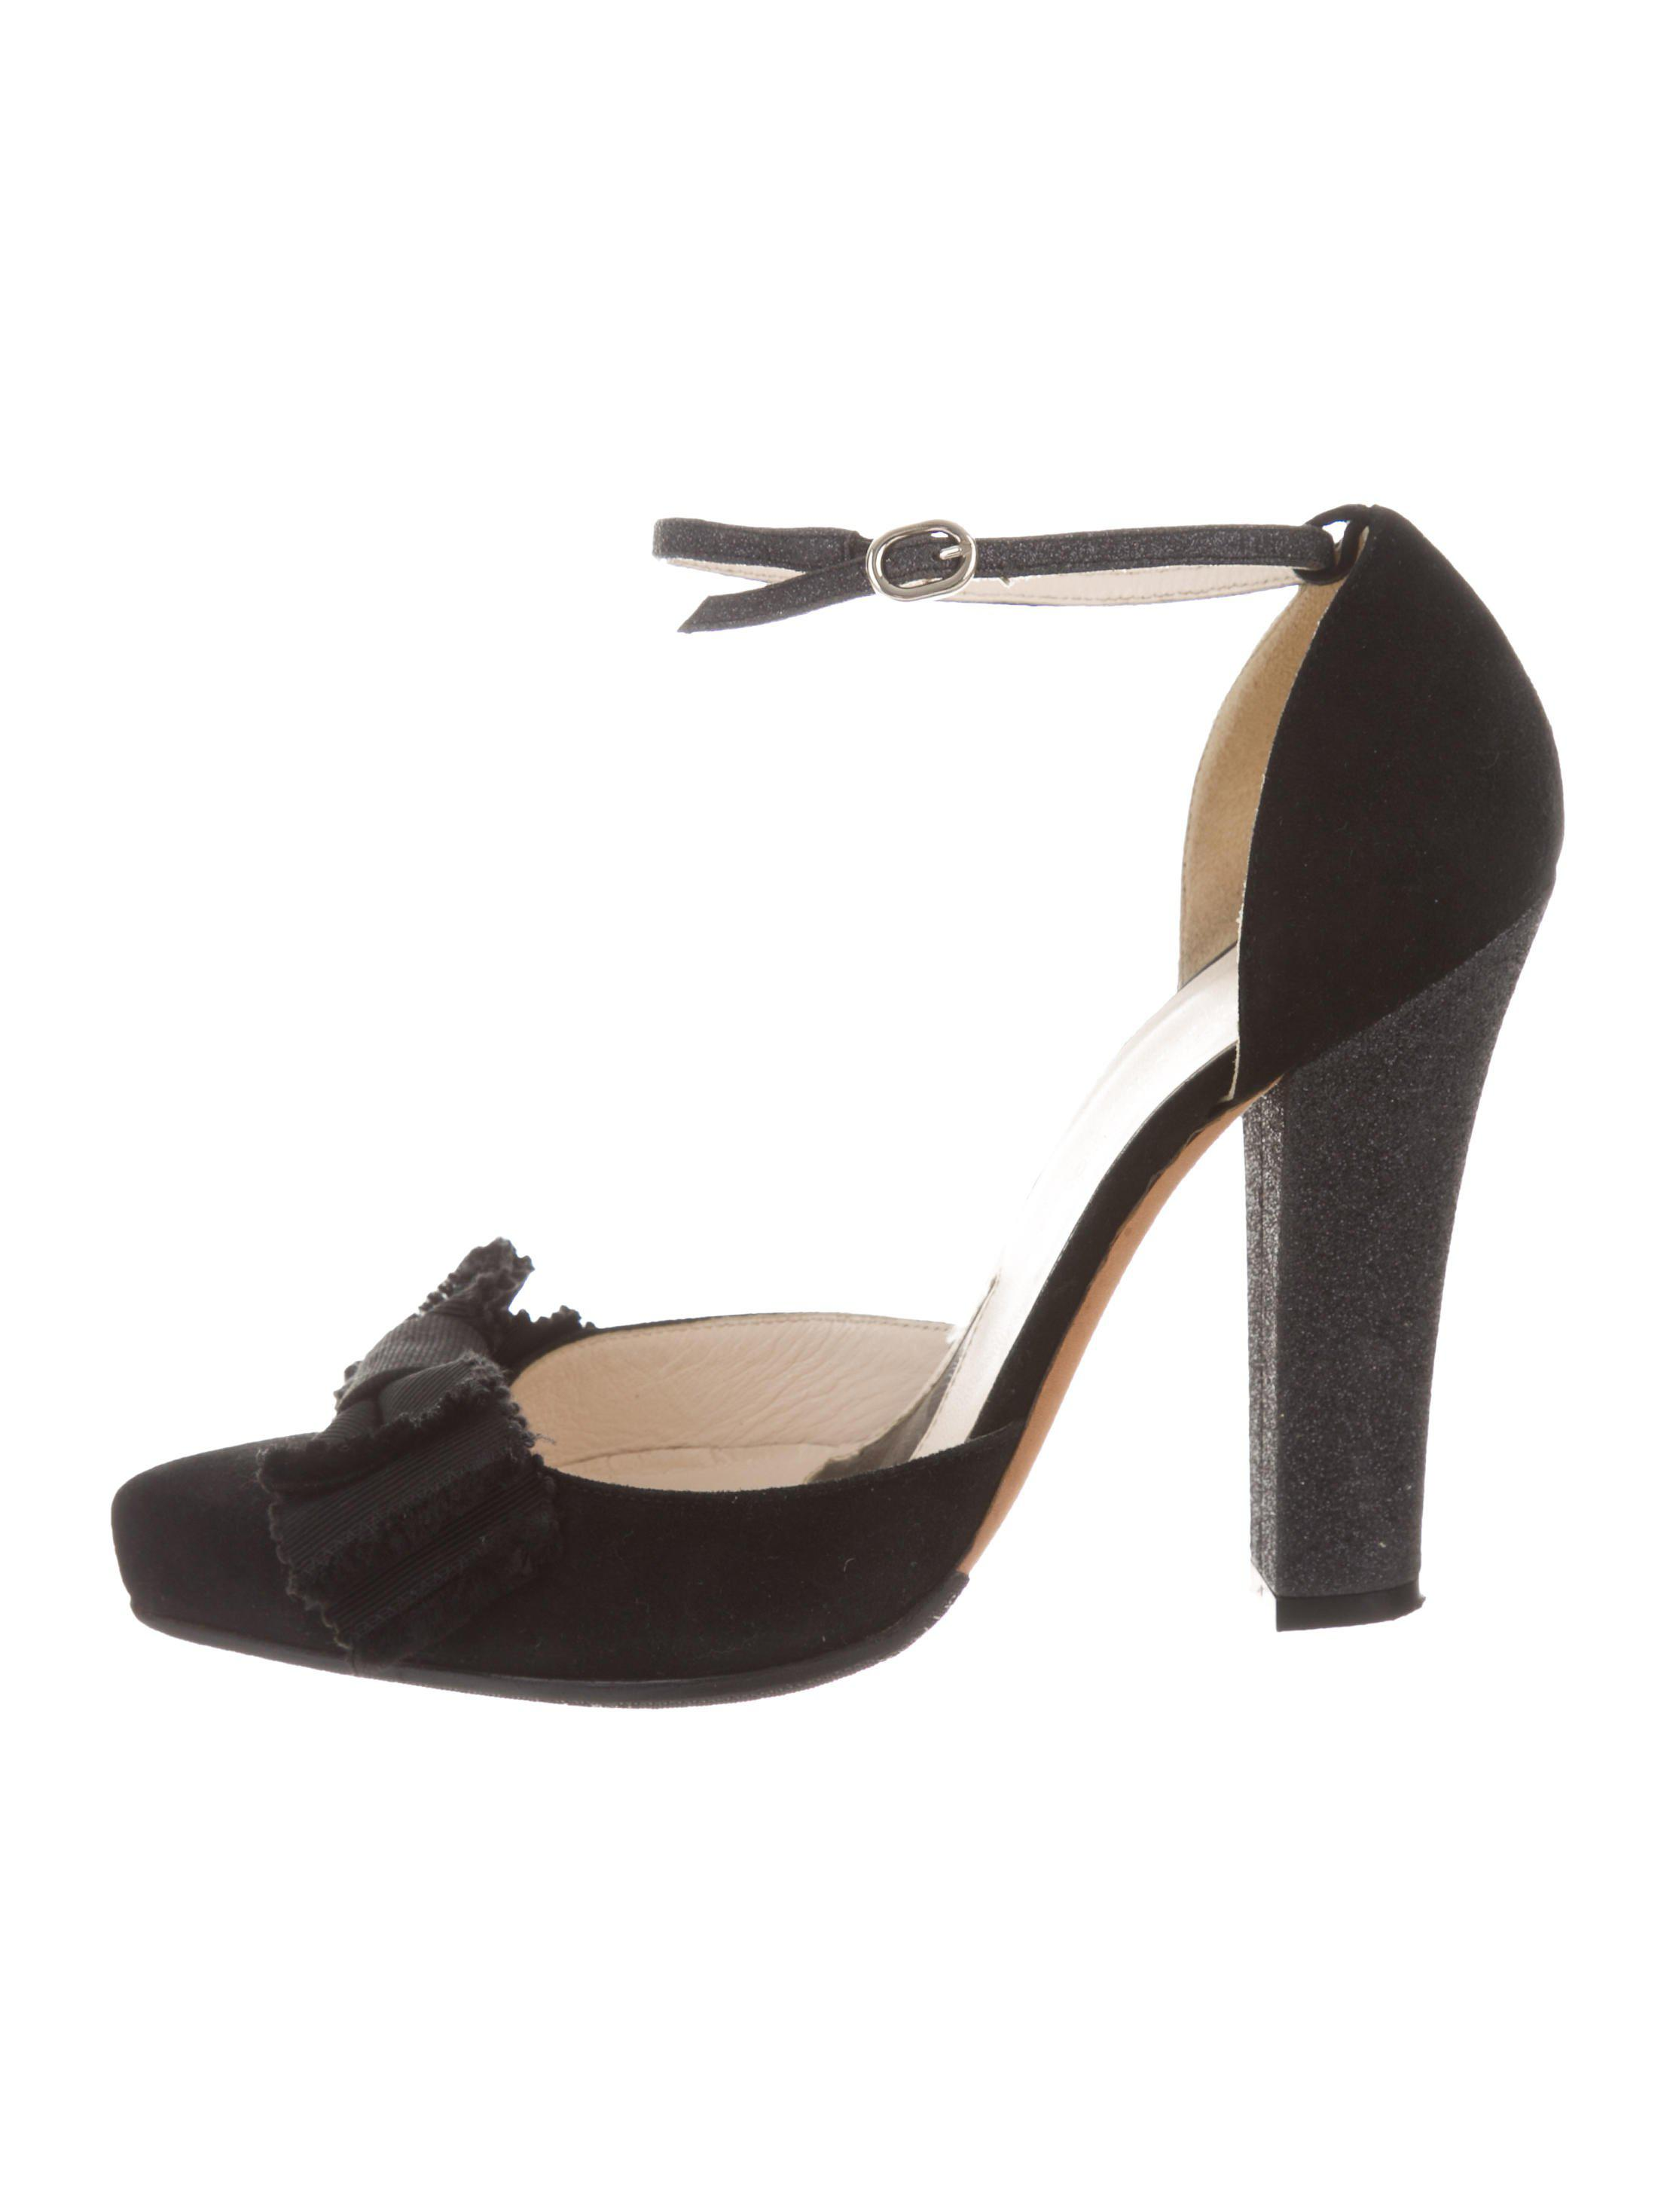 Alessandro Dell'Acqua Bow-Accented Pointed-Toe Pumps countdown package online cheap prices cheap 100% original VUTn5KogZT